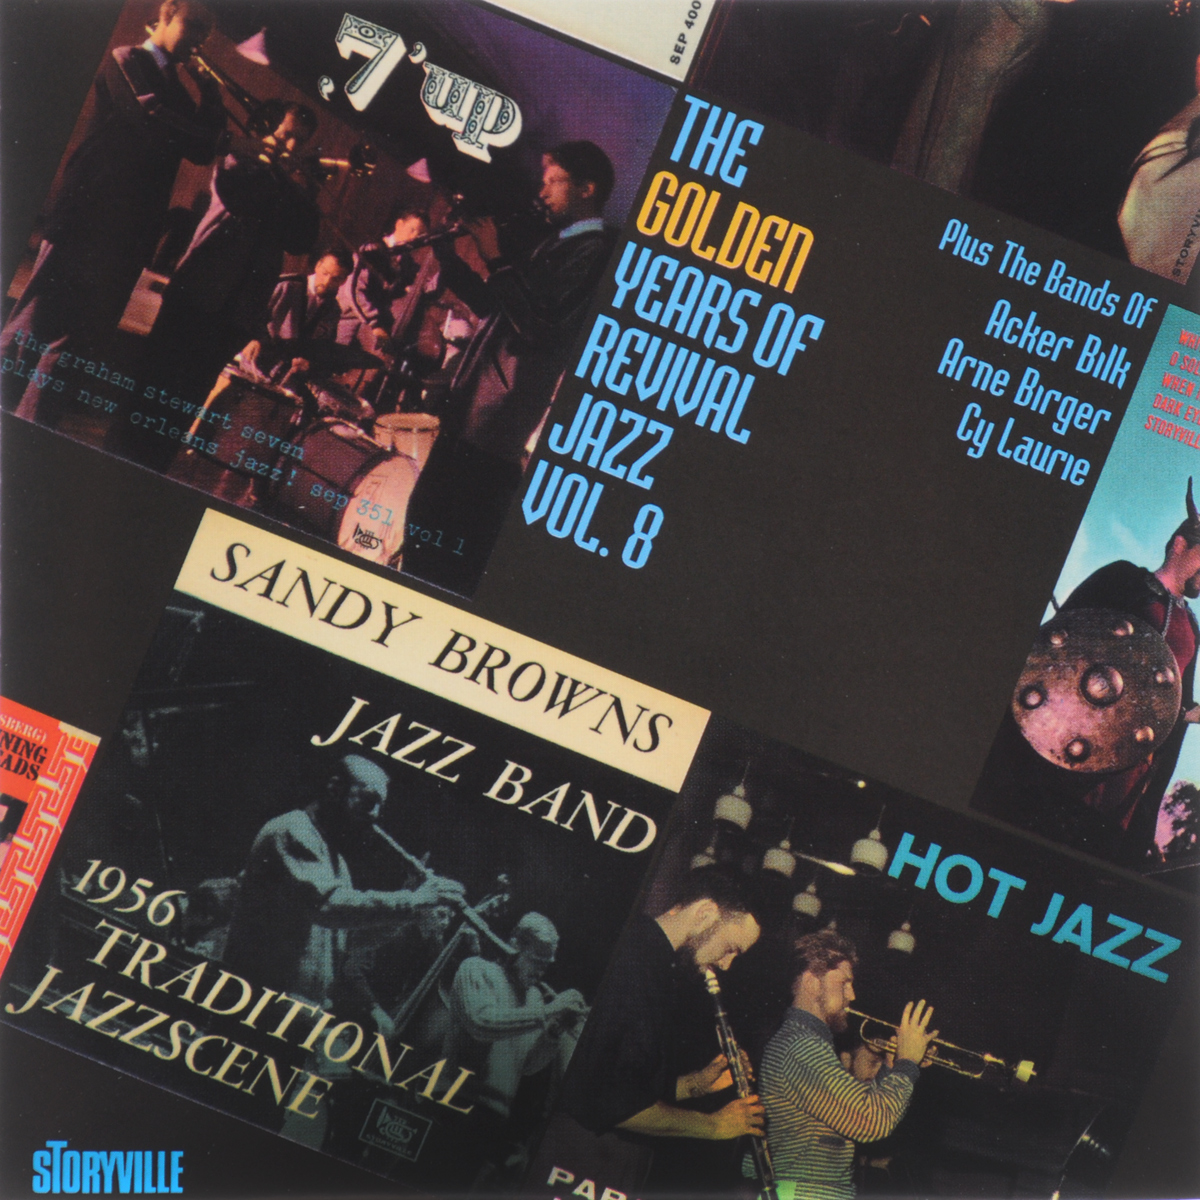 Papa Bue's Viking Jazz Band,Sandy Brown's Jazz Band,The Graham Stewart Seven,Акер Билк,His Paramount Jazz Band,Arne Birger's Jazzsjak,Cy Laurie's New Orleans Septet The Golden Years Of Revival Jazz. Vol.8 jazz